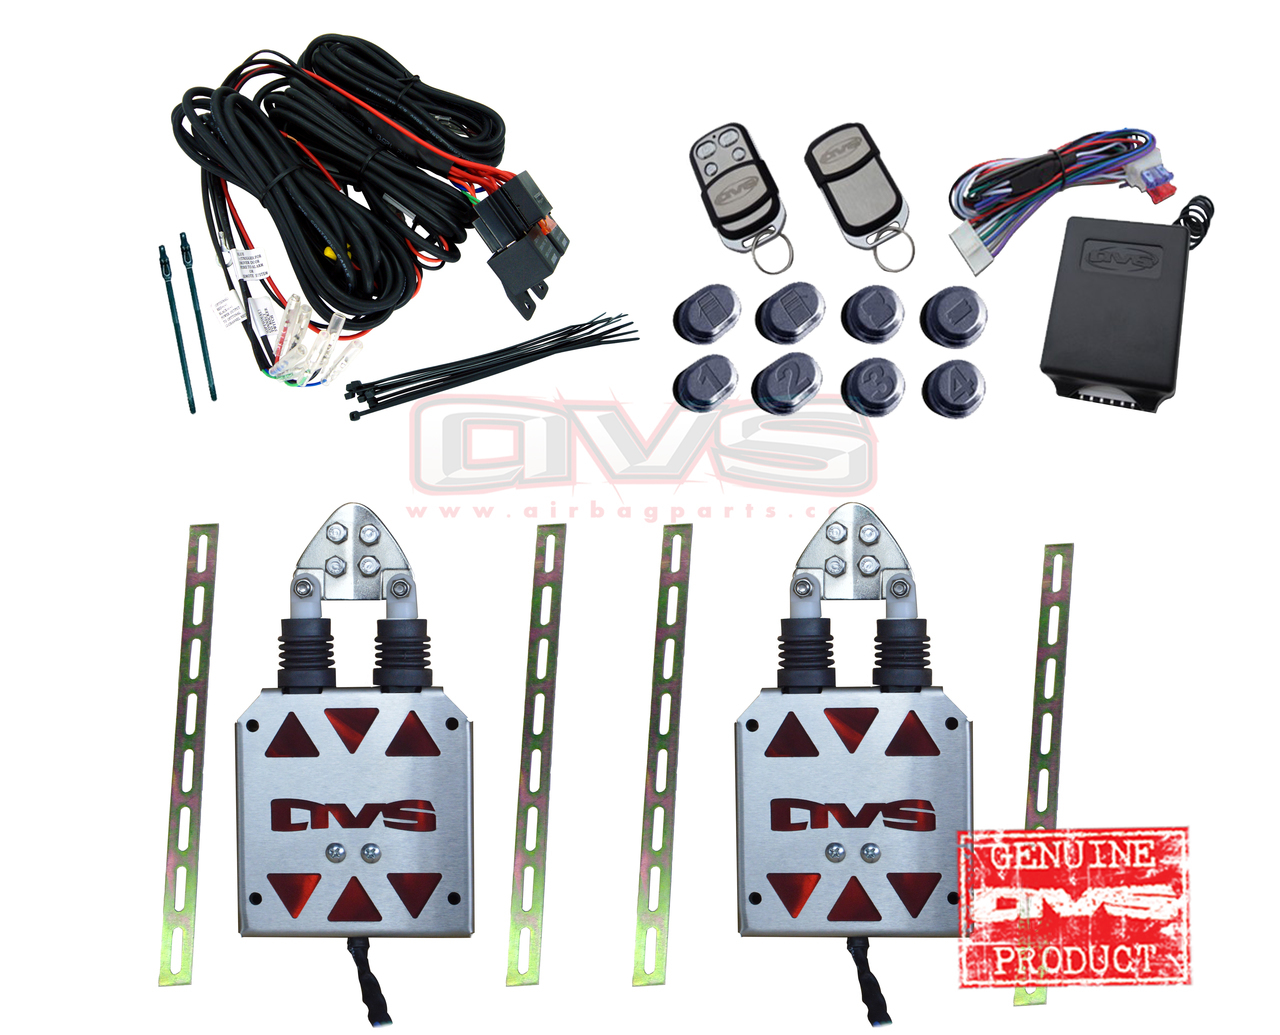 Avs Shaved Door Kit With Remote Control System Wiring Harness Home Handle Kits